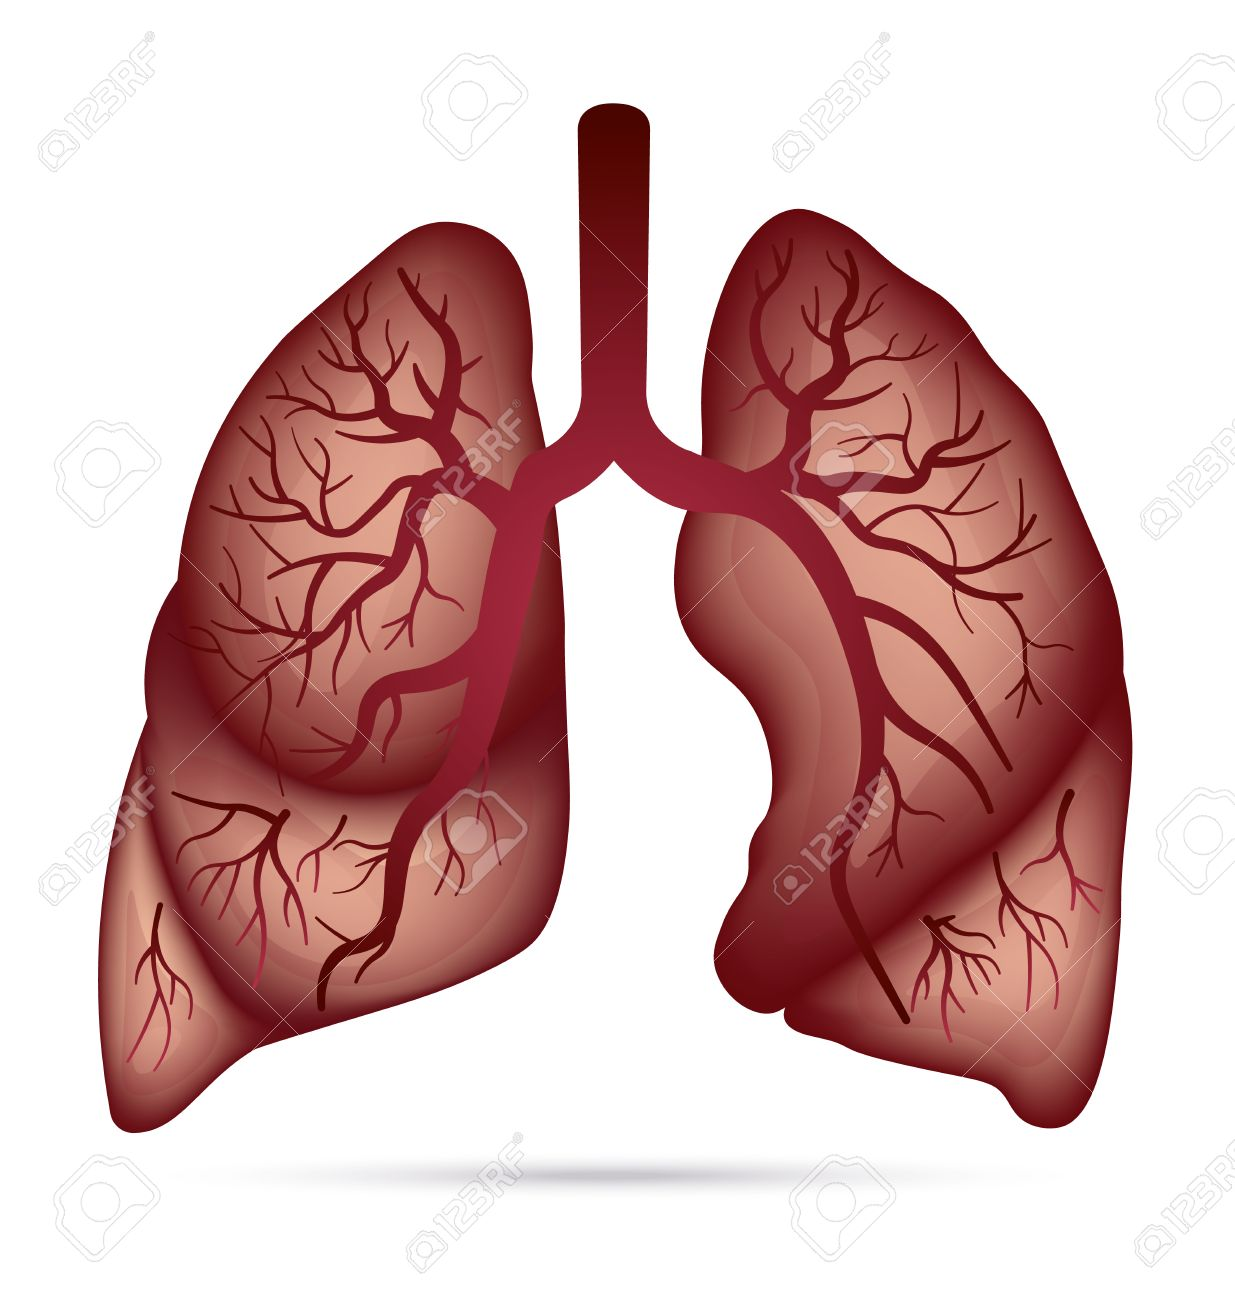 Human lungs anatomy for asthma, tuberculosis, pneumonia. Lung...